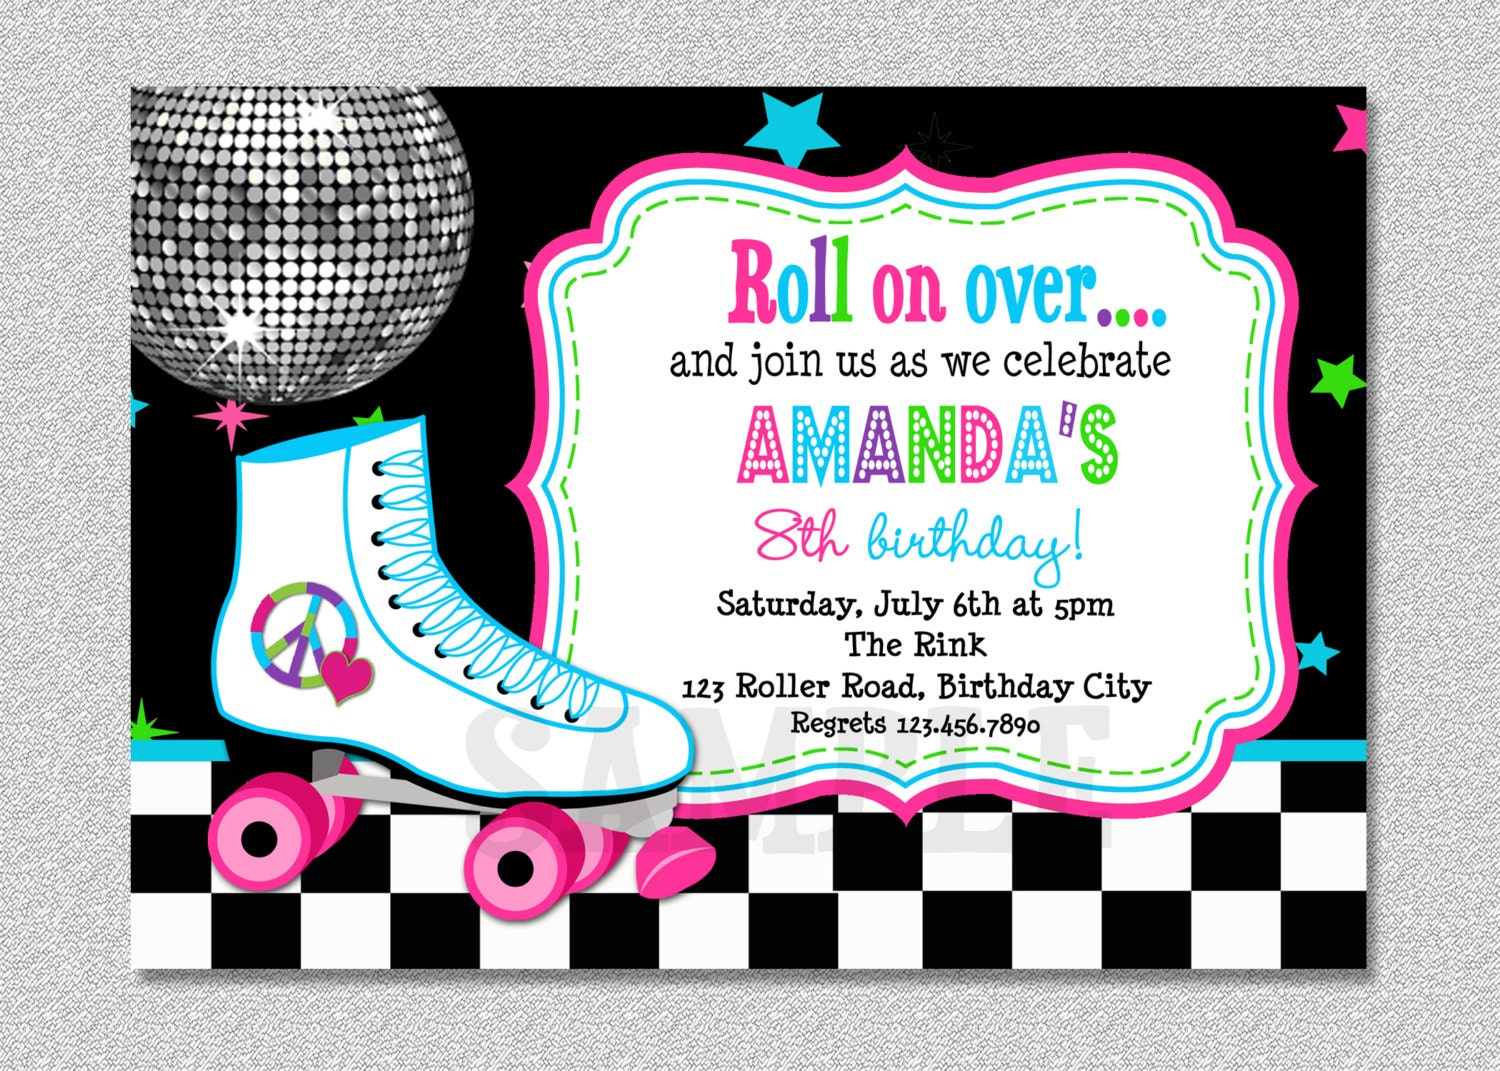 Disco Party Invitations with luxury invitations example